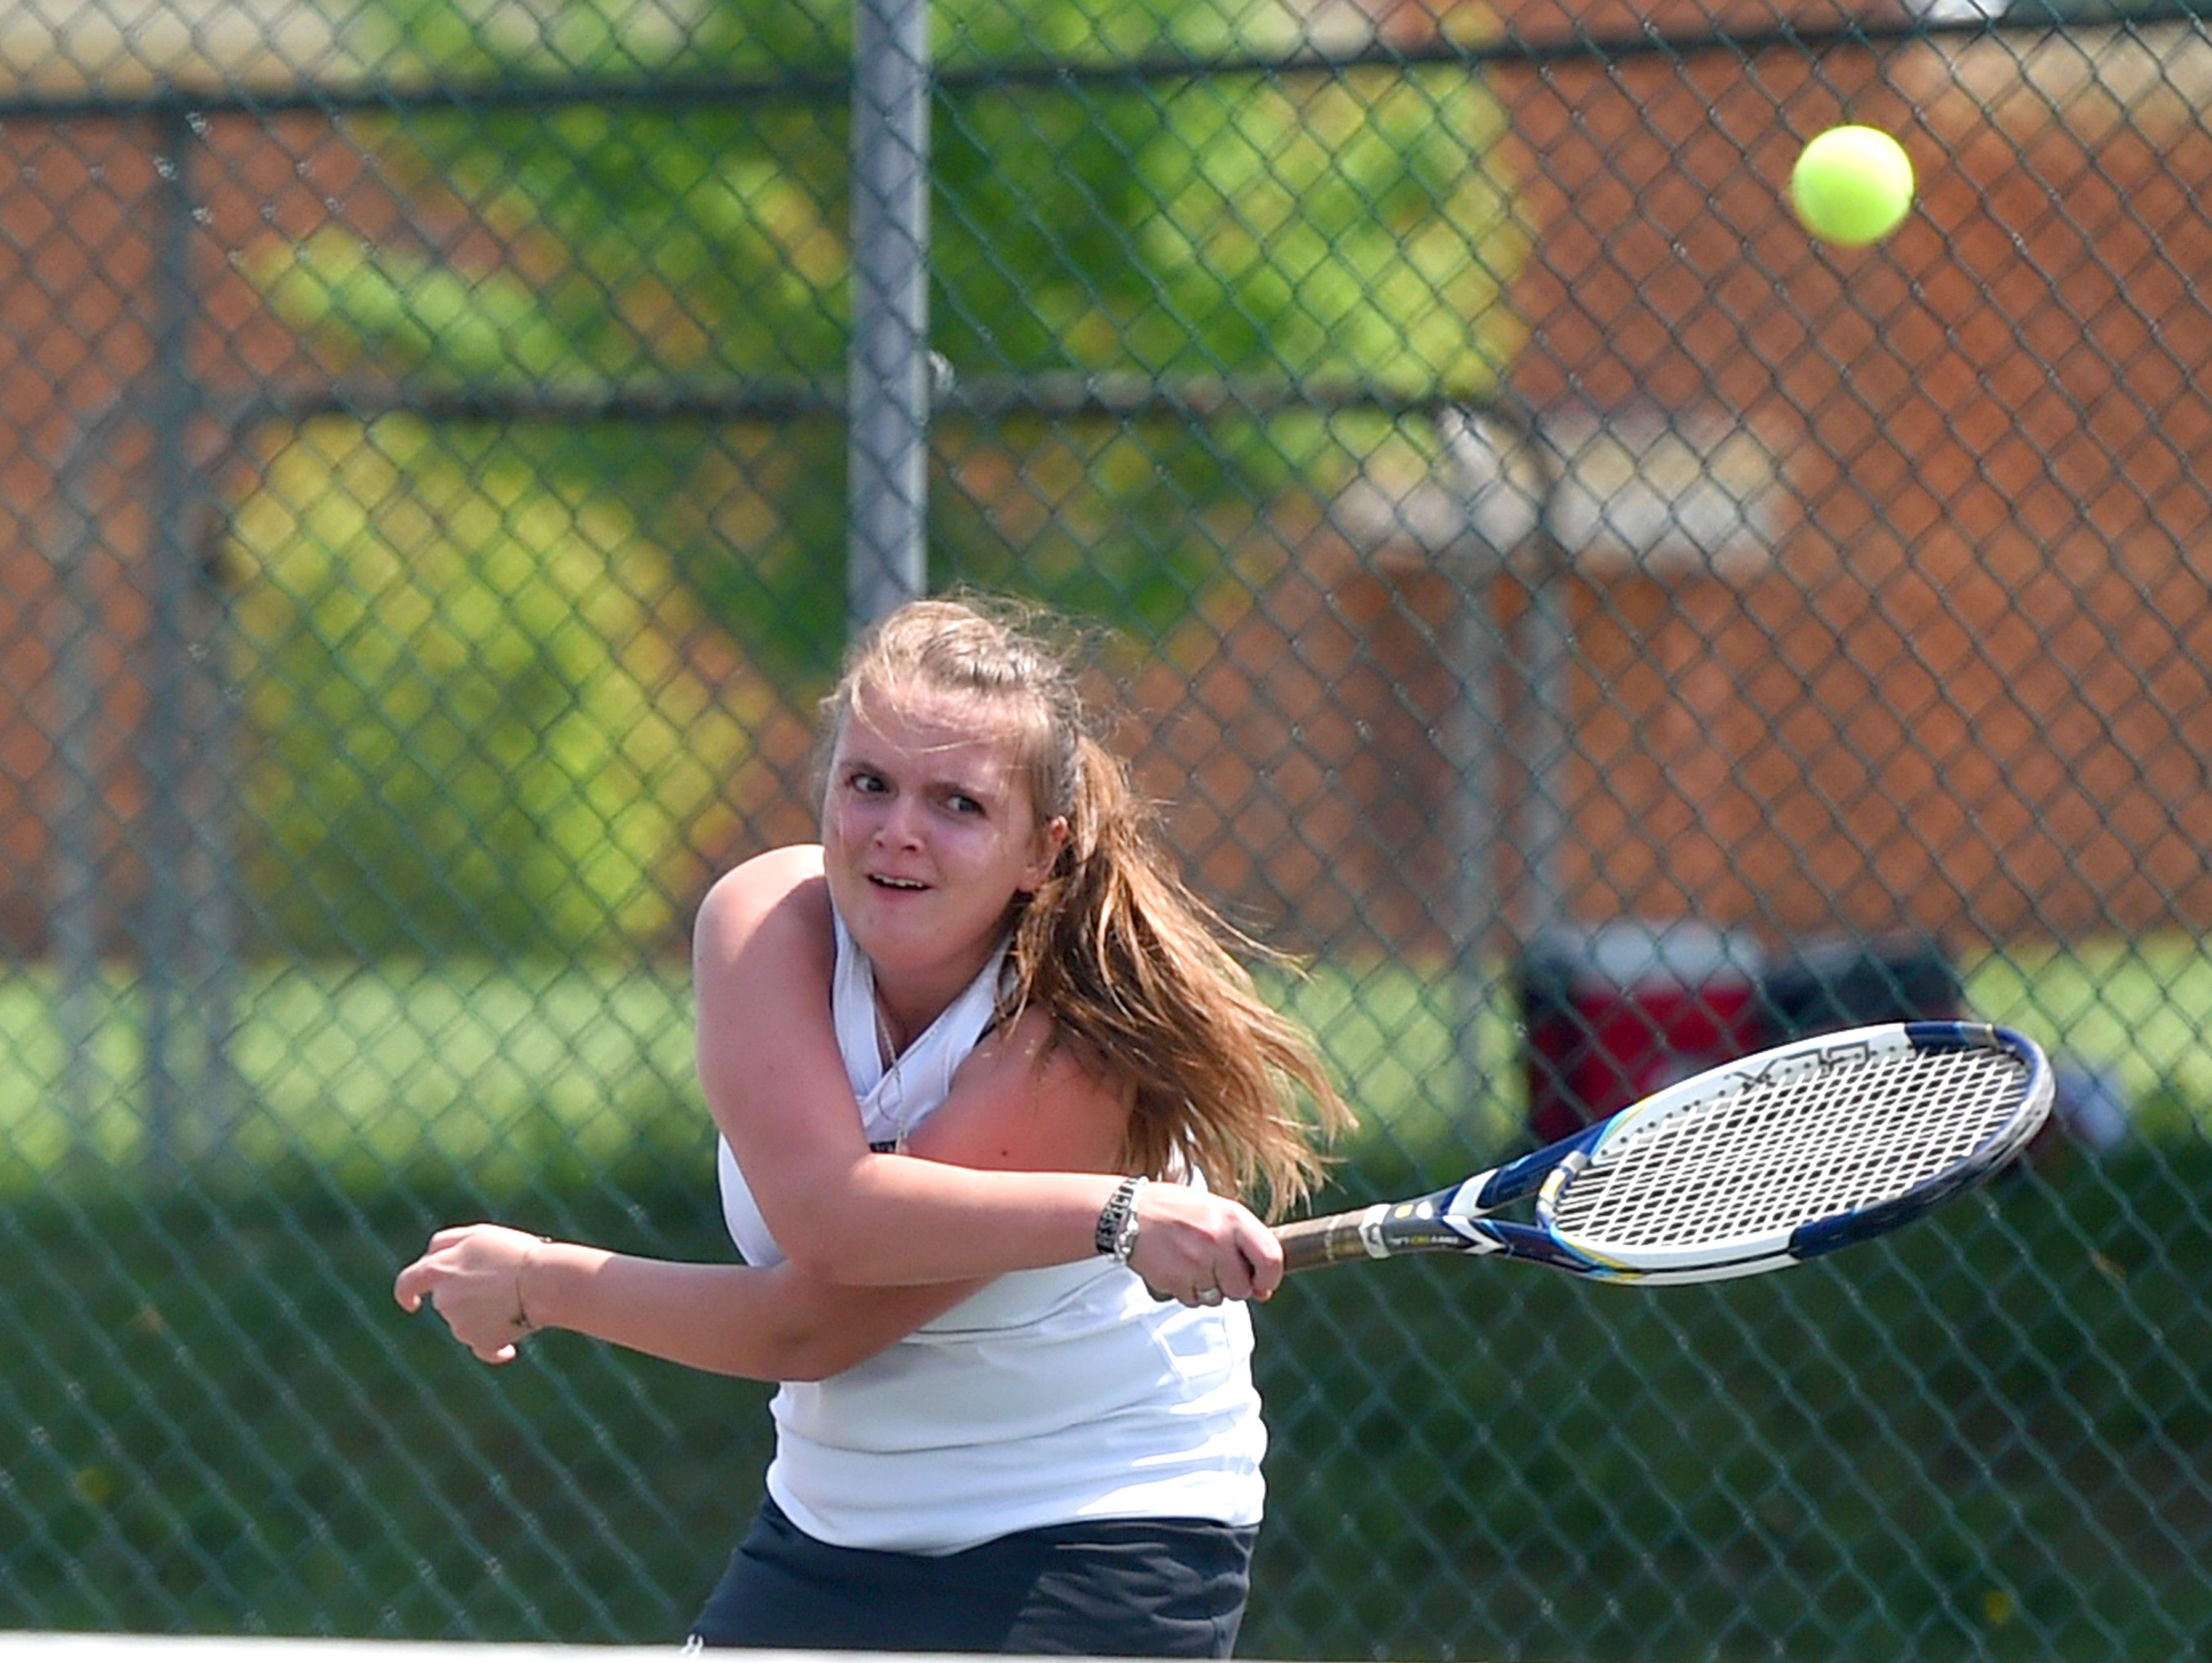 Buffalo Gap's Renae Coon puts power into a return in a match against East Rockingham's Chloe Shuff during the Conference 36 tennis tournament in Fishersville on Thursday, May 13, 2016.